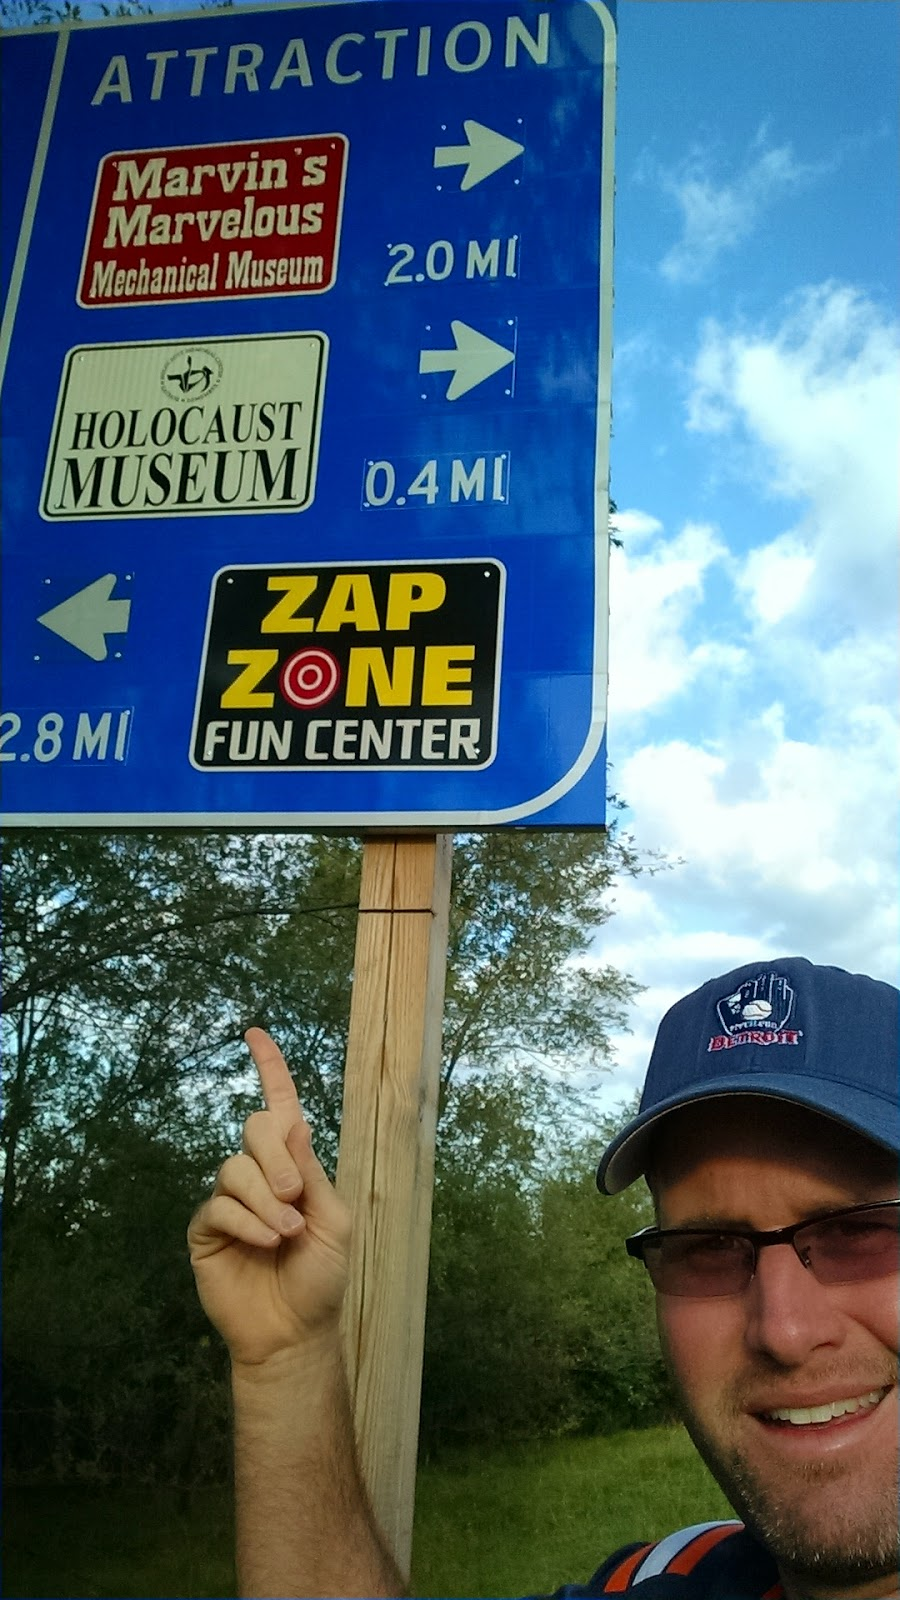 In Metro Detroit, a new highway sign puts the Holocaust Museum between two video arcade centers